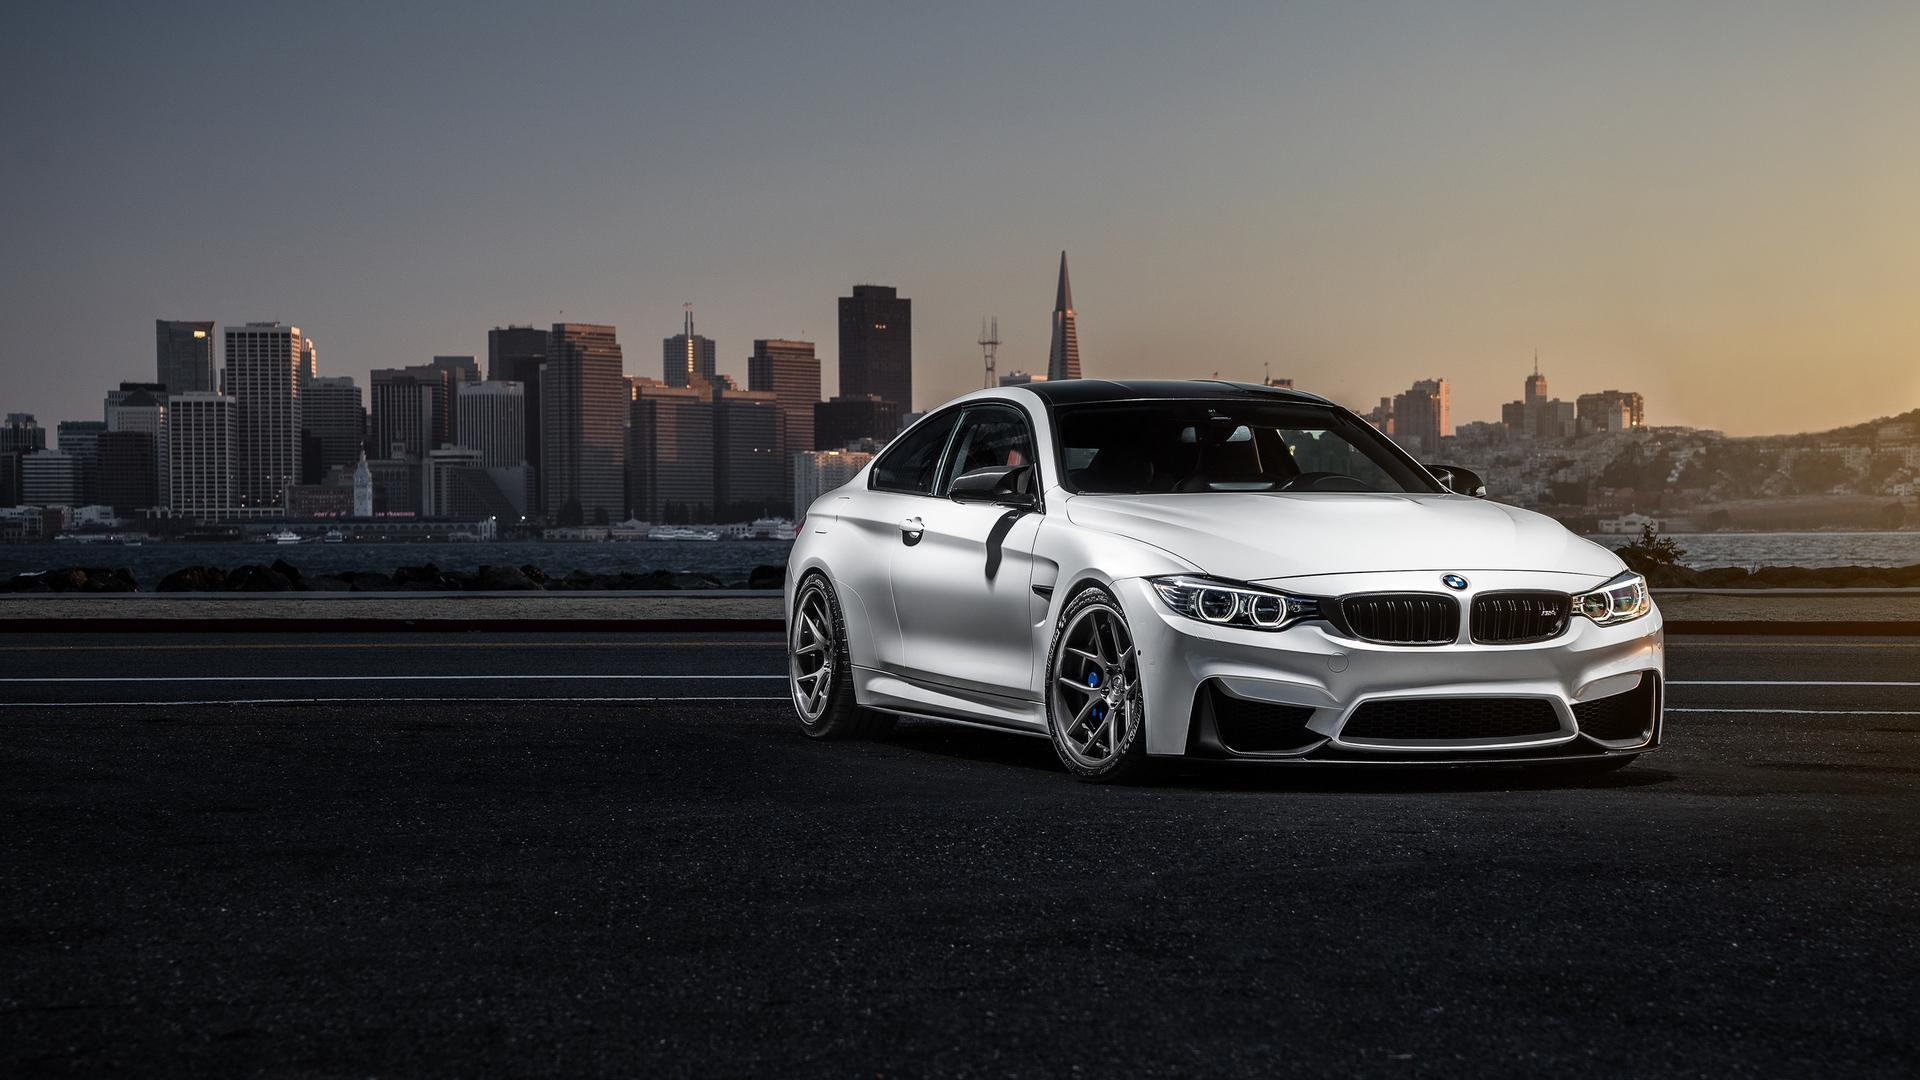 BMW Wallpaper HD 4K Pictures Images Backgrounds for Android 1920x1080